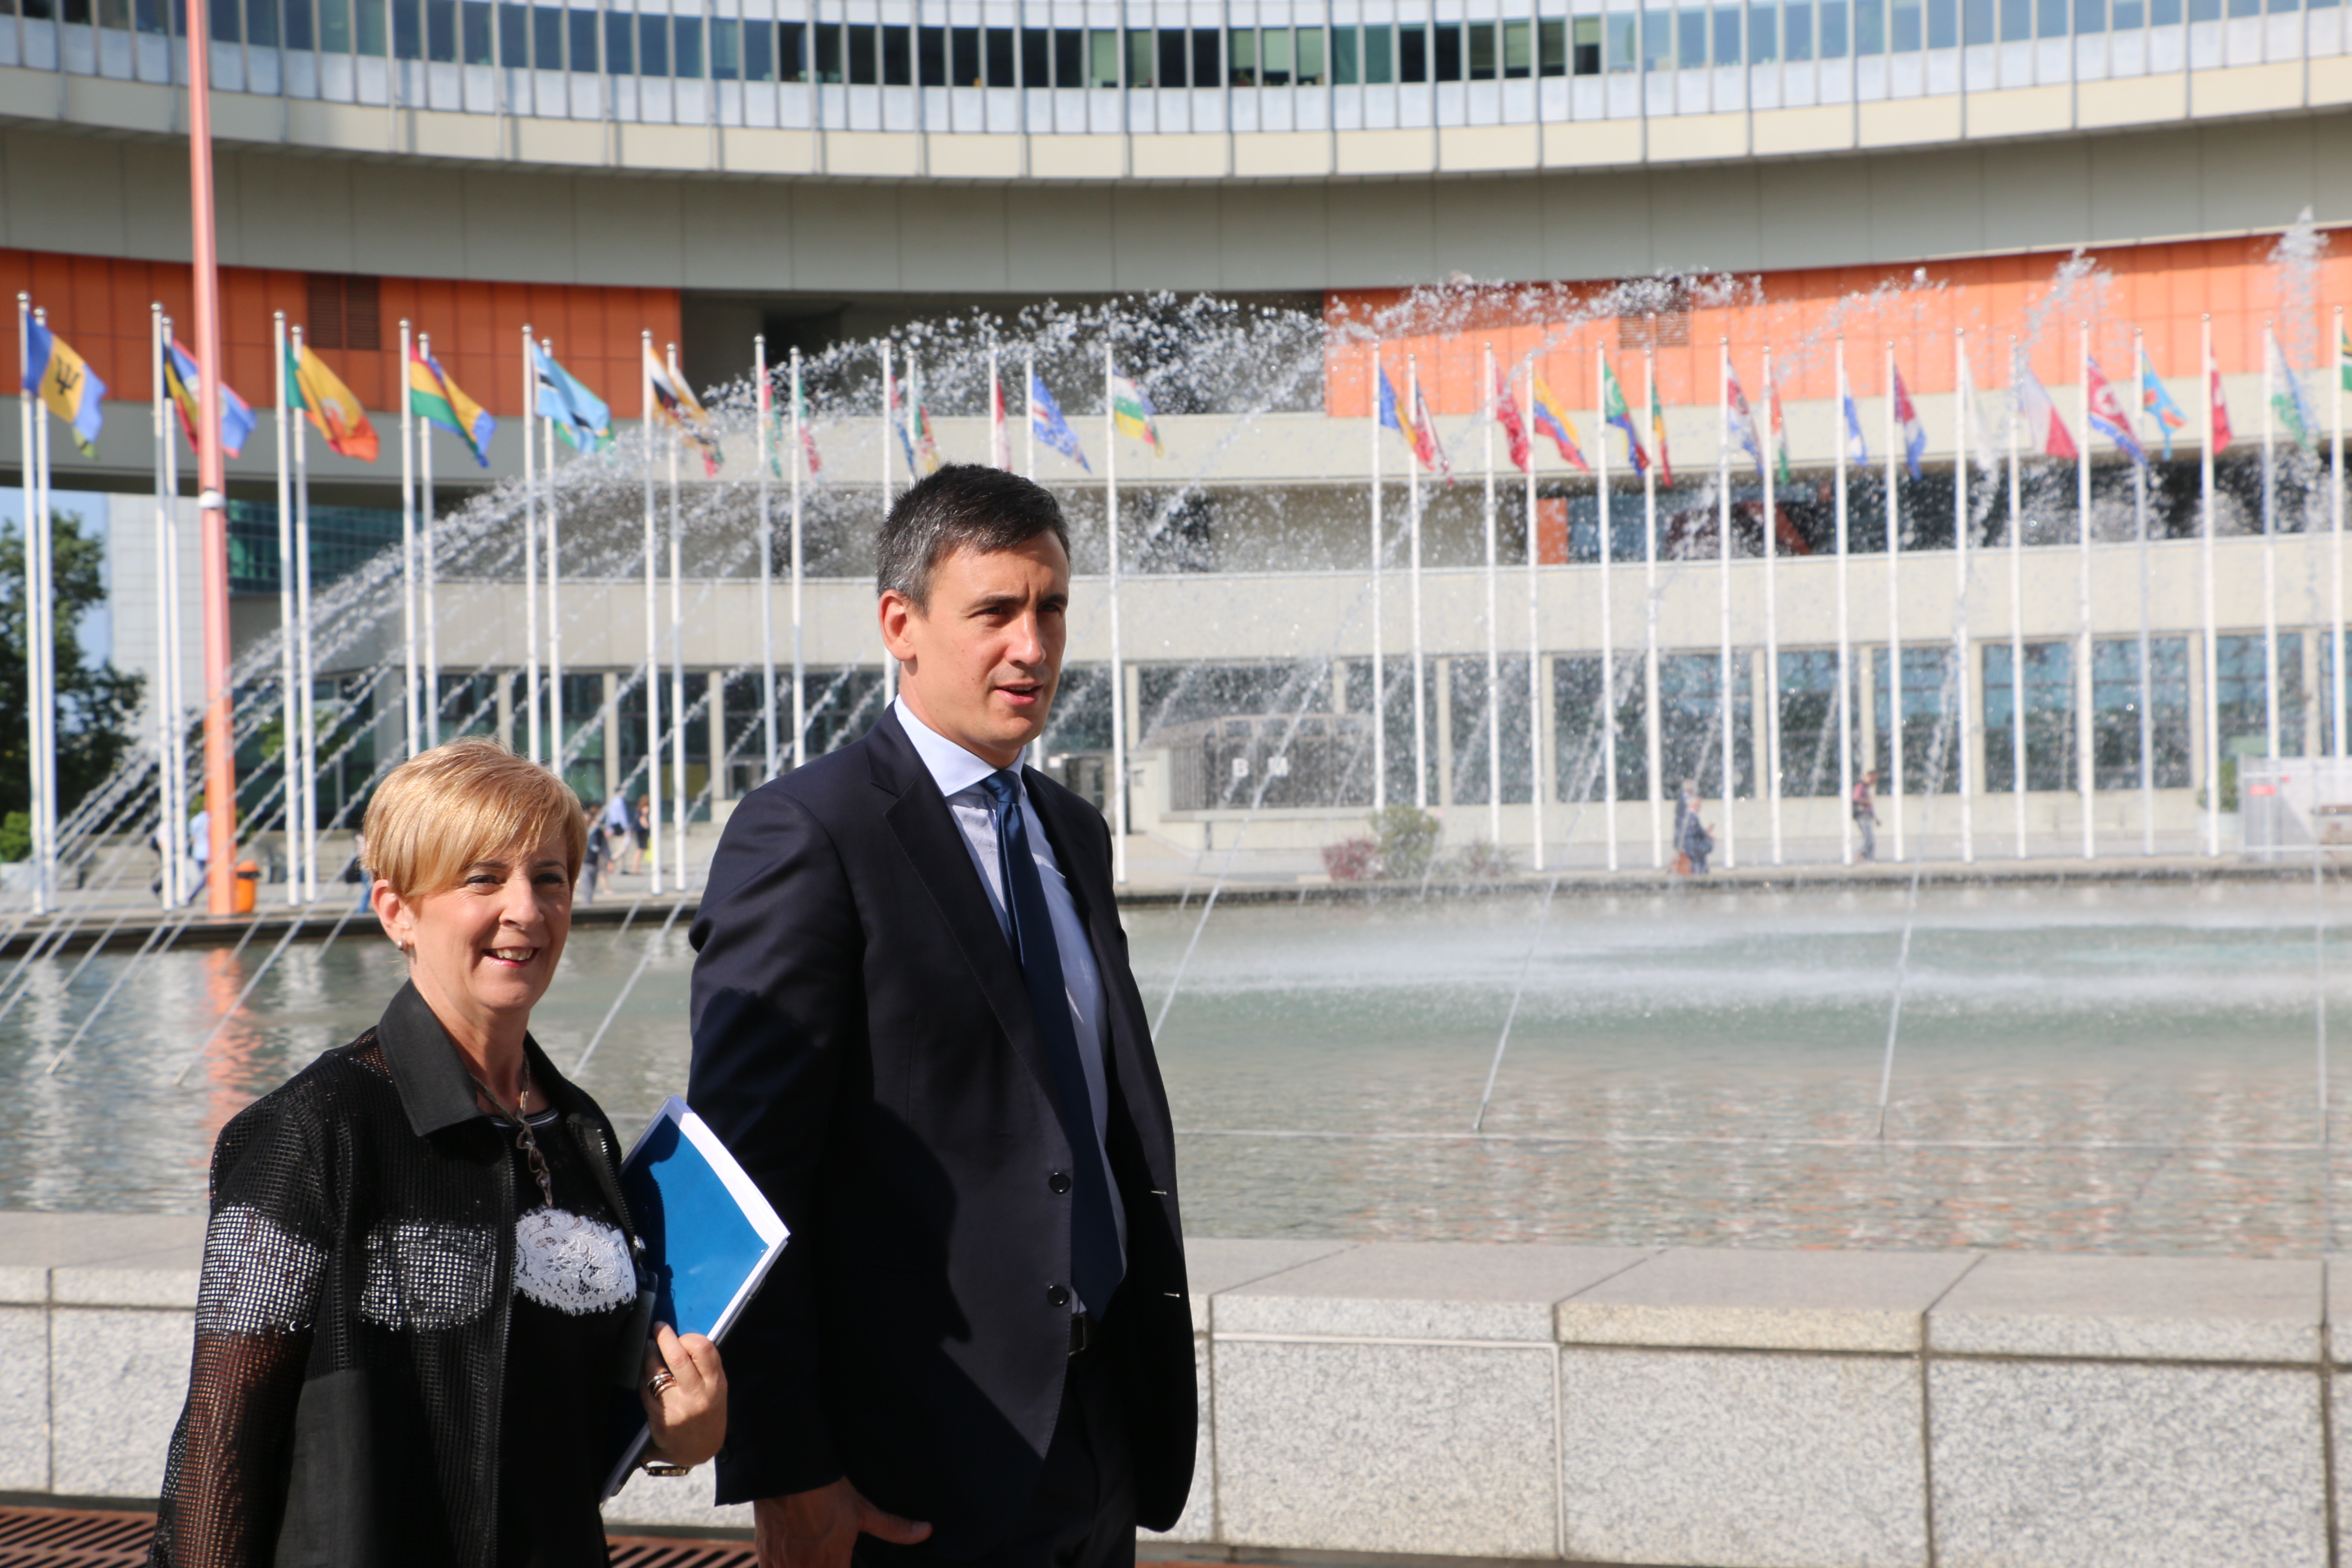 UNIDO, the UN's industrial organisation, selects the Basque Industry 4.0 strategy as a recommendable practice for industrial development